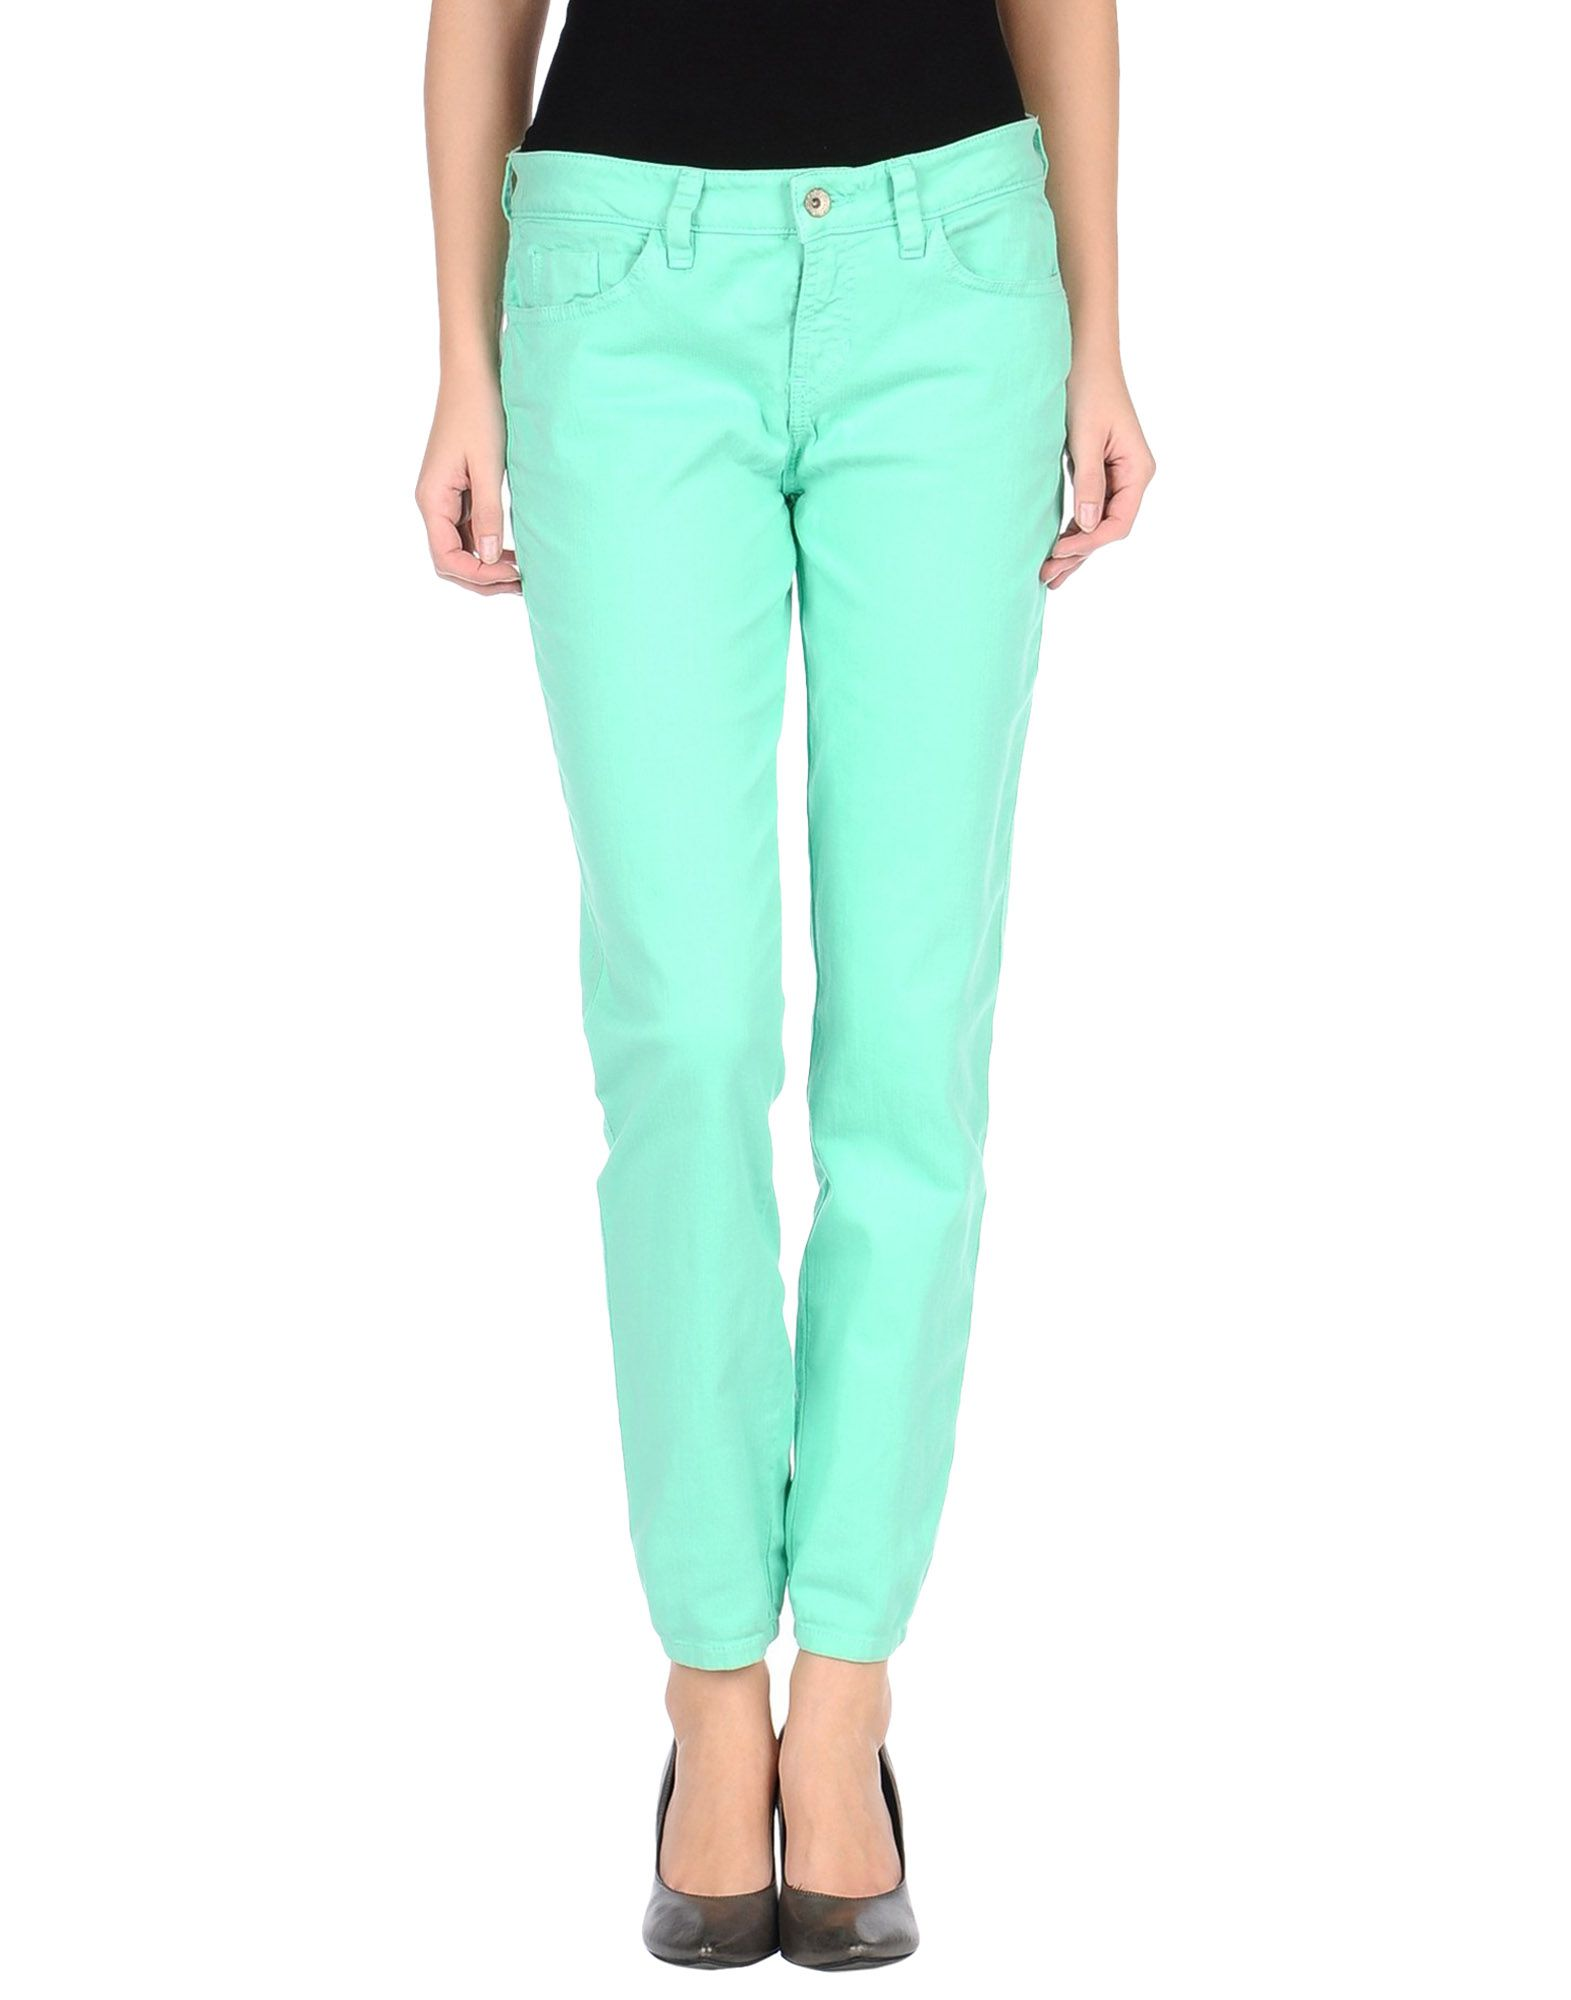 Innovative Mint Green Pants Women | Pant So